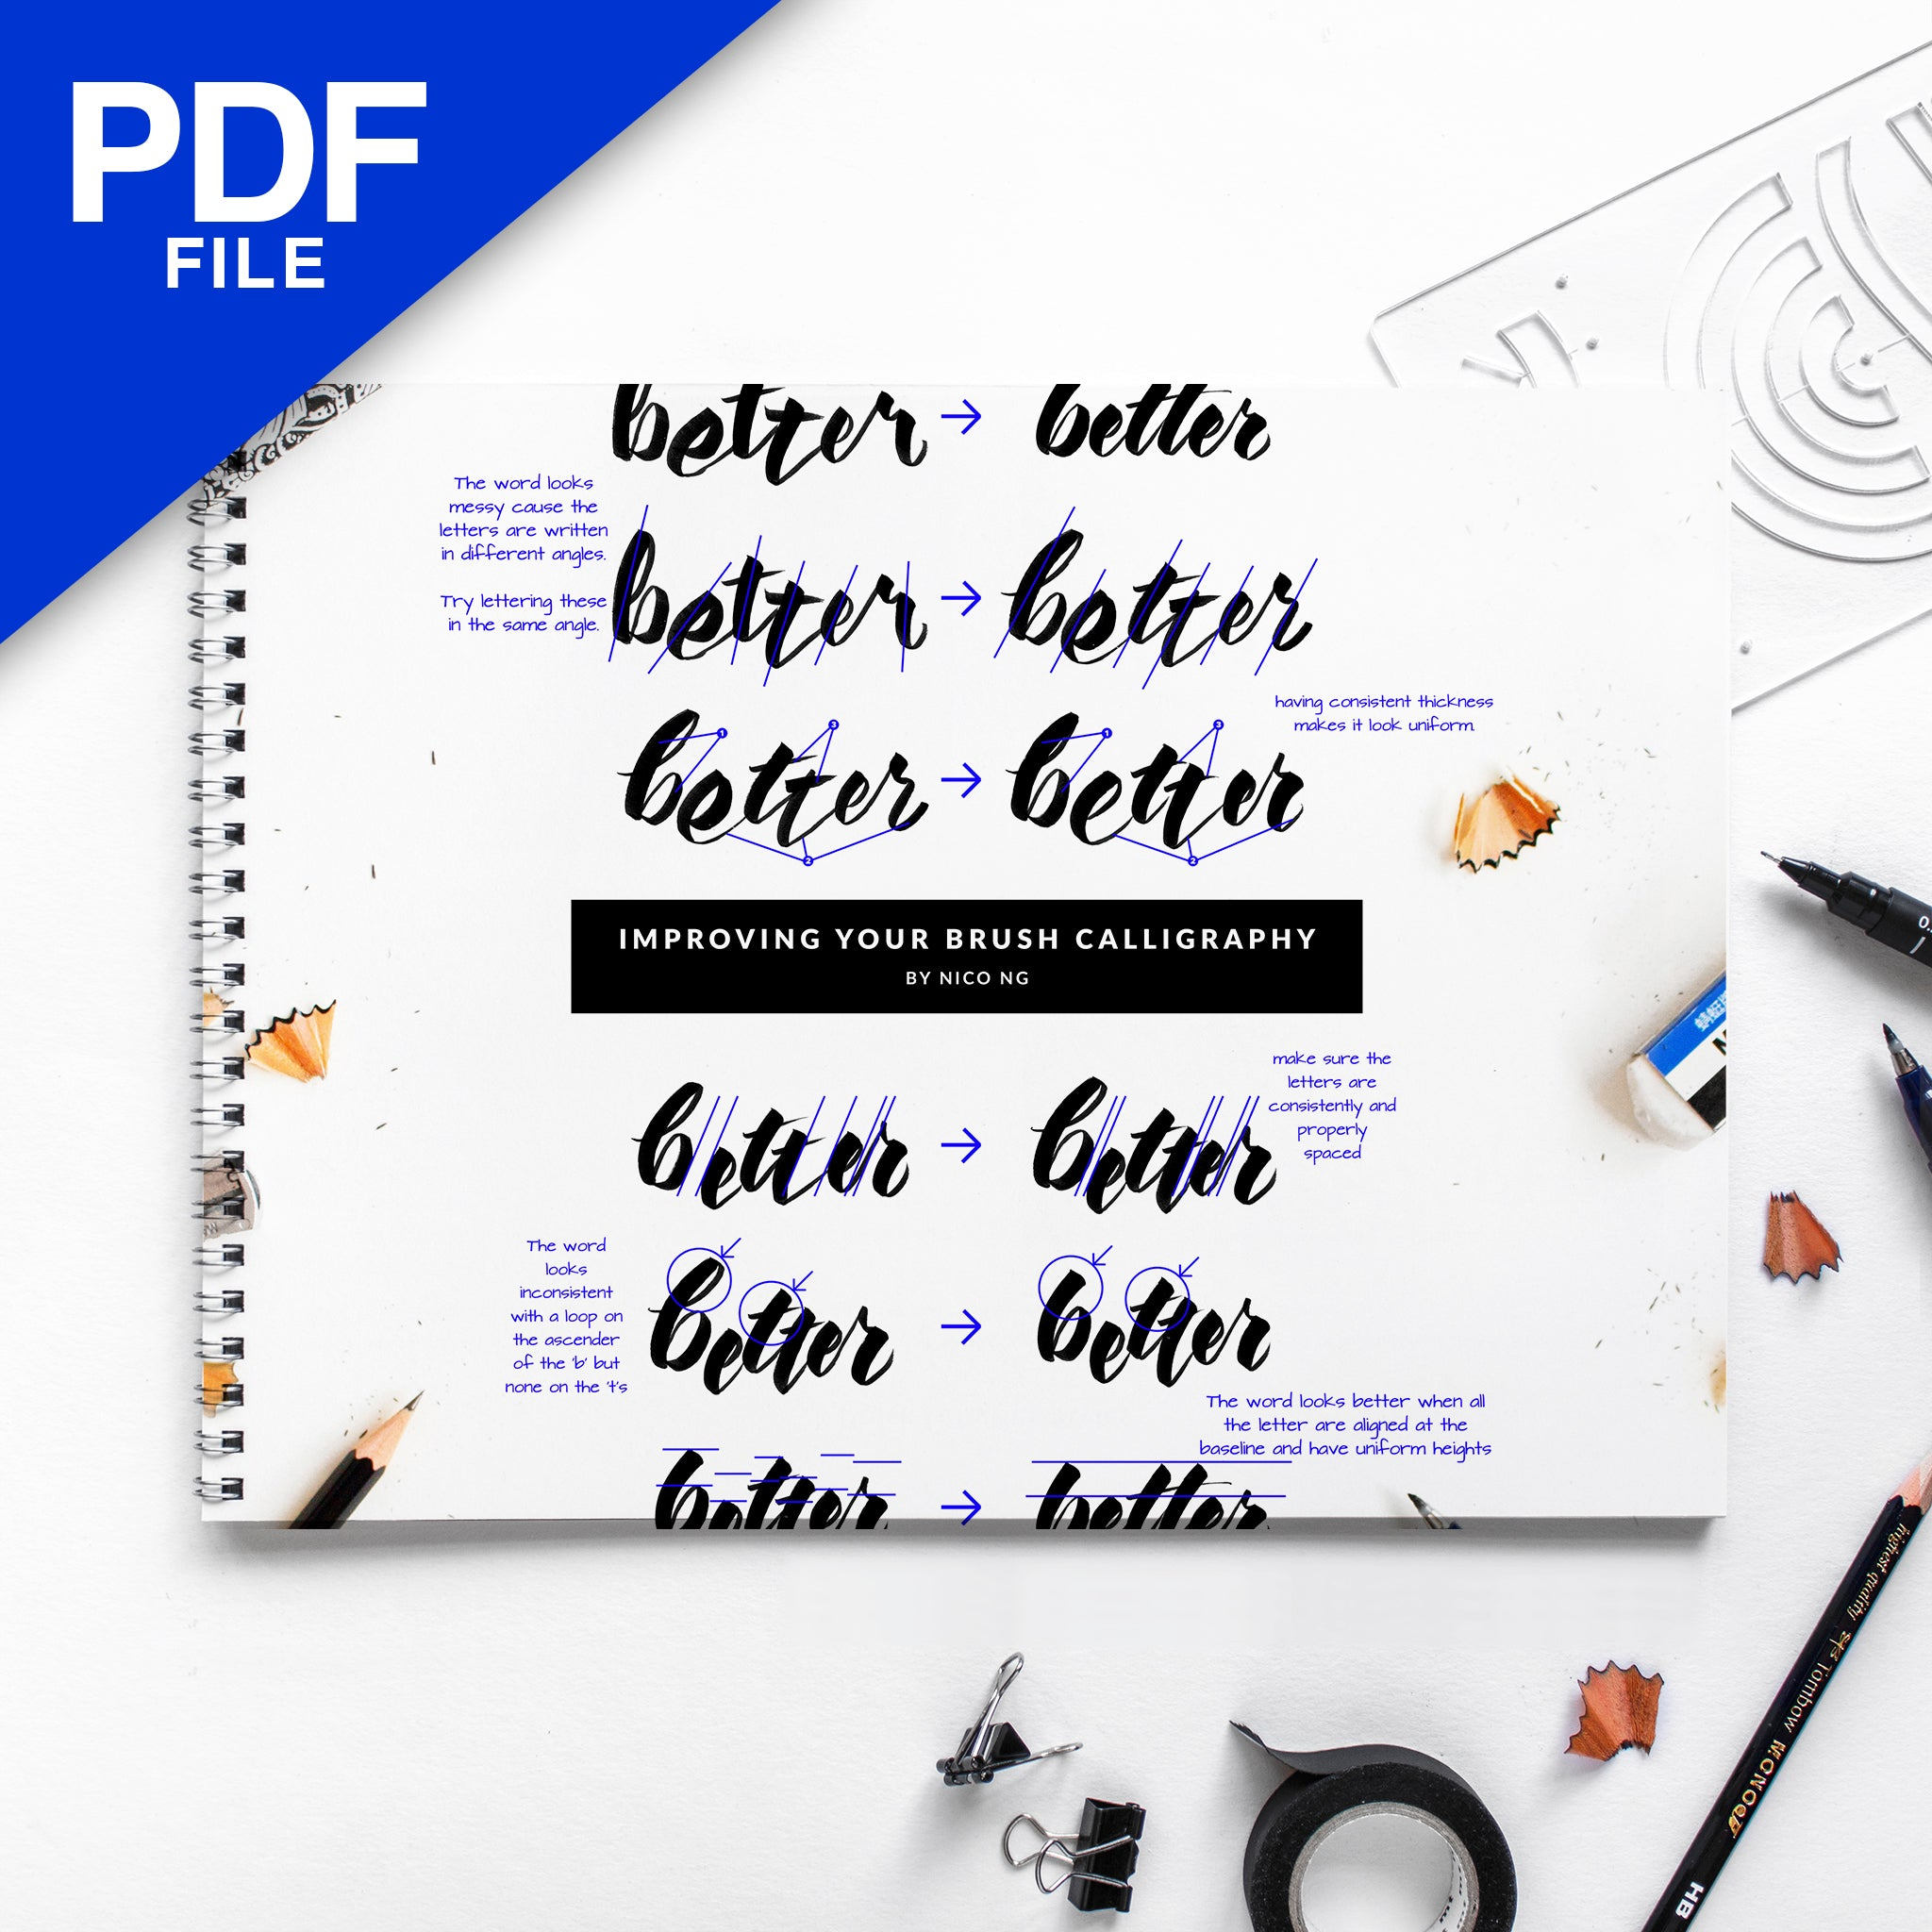 [PDF] Improving Your Brush Calligraphy Workbook by Nico Ng